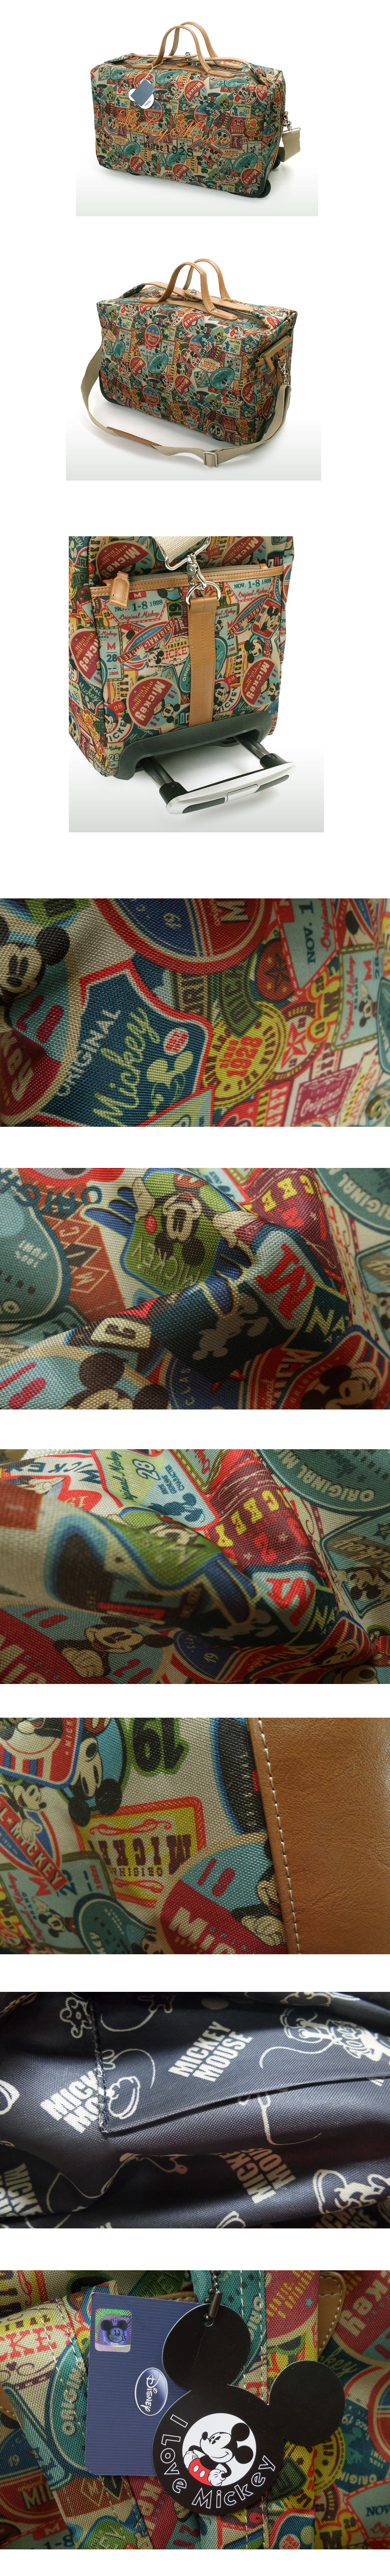 Mickey Mouse Boston Trunk